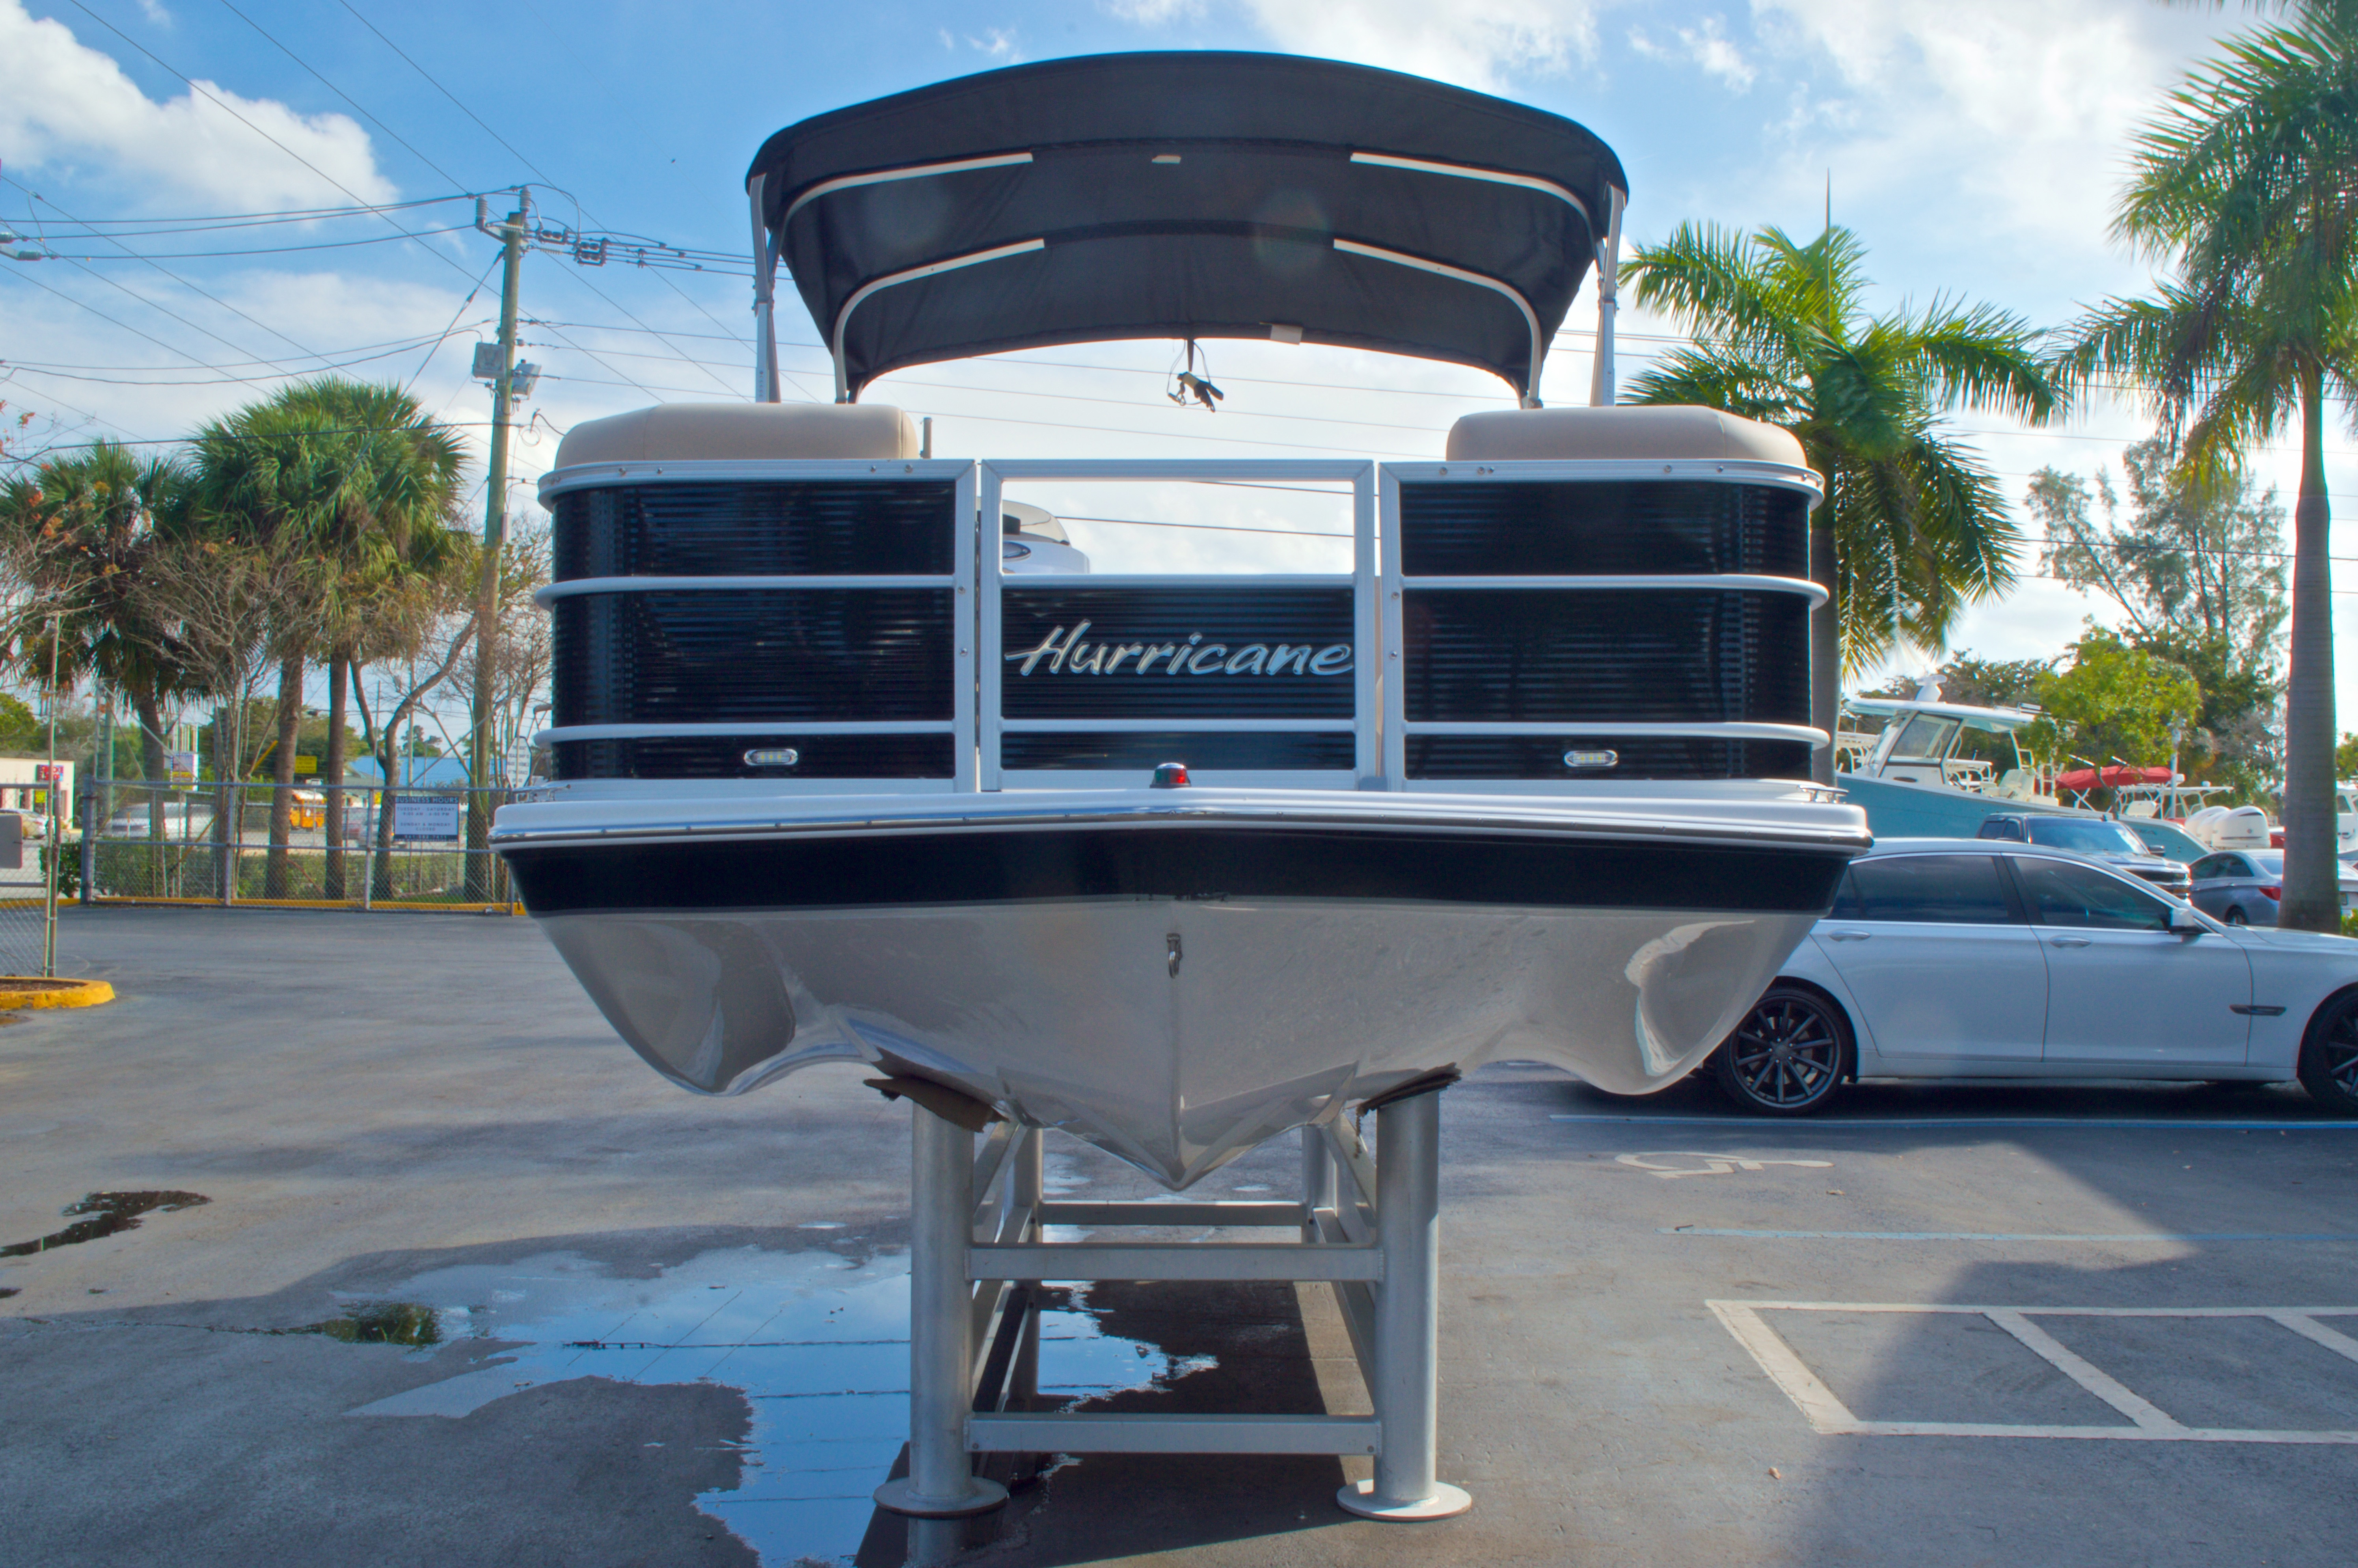 Thumbnail 2 for New 2016 Hurricane Fundeck FD 196 OB boat for sale in West Palm Beach, FL